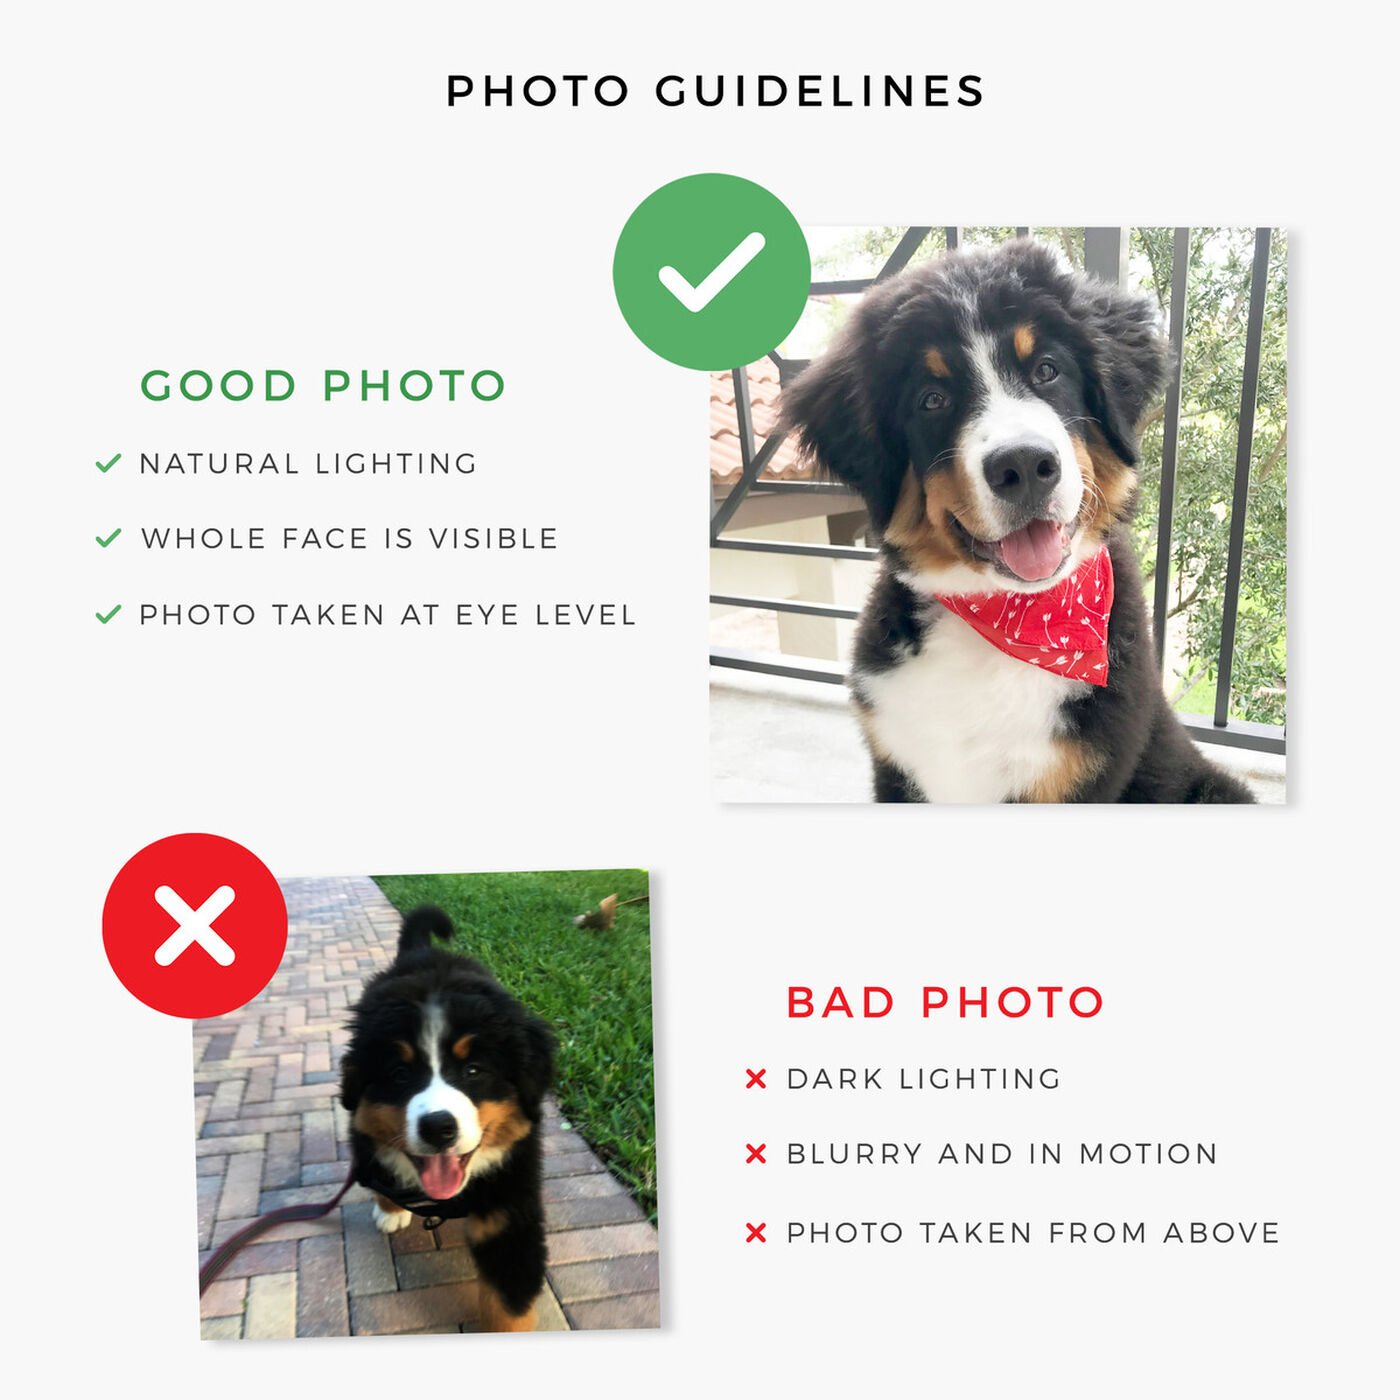 Pet photo guidelines.